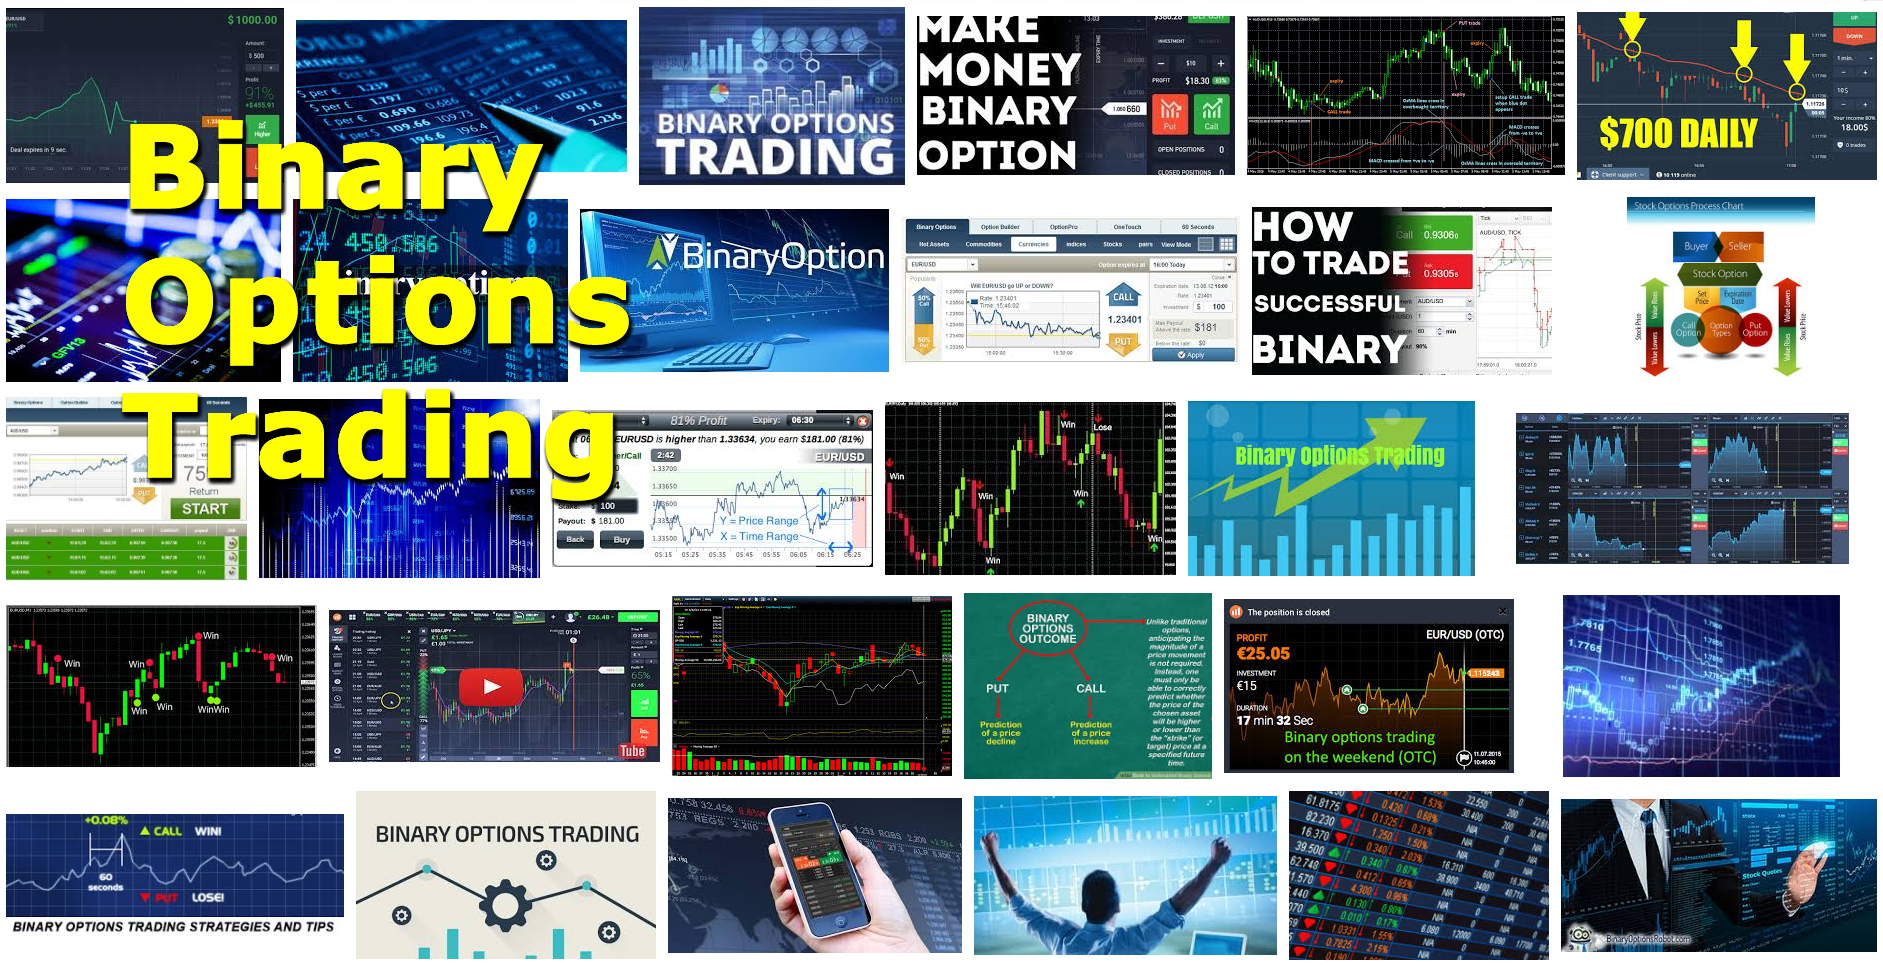 Binary options trading knowledge